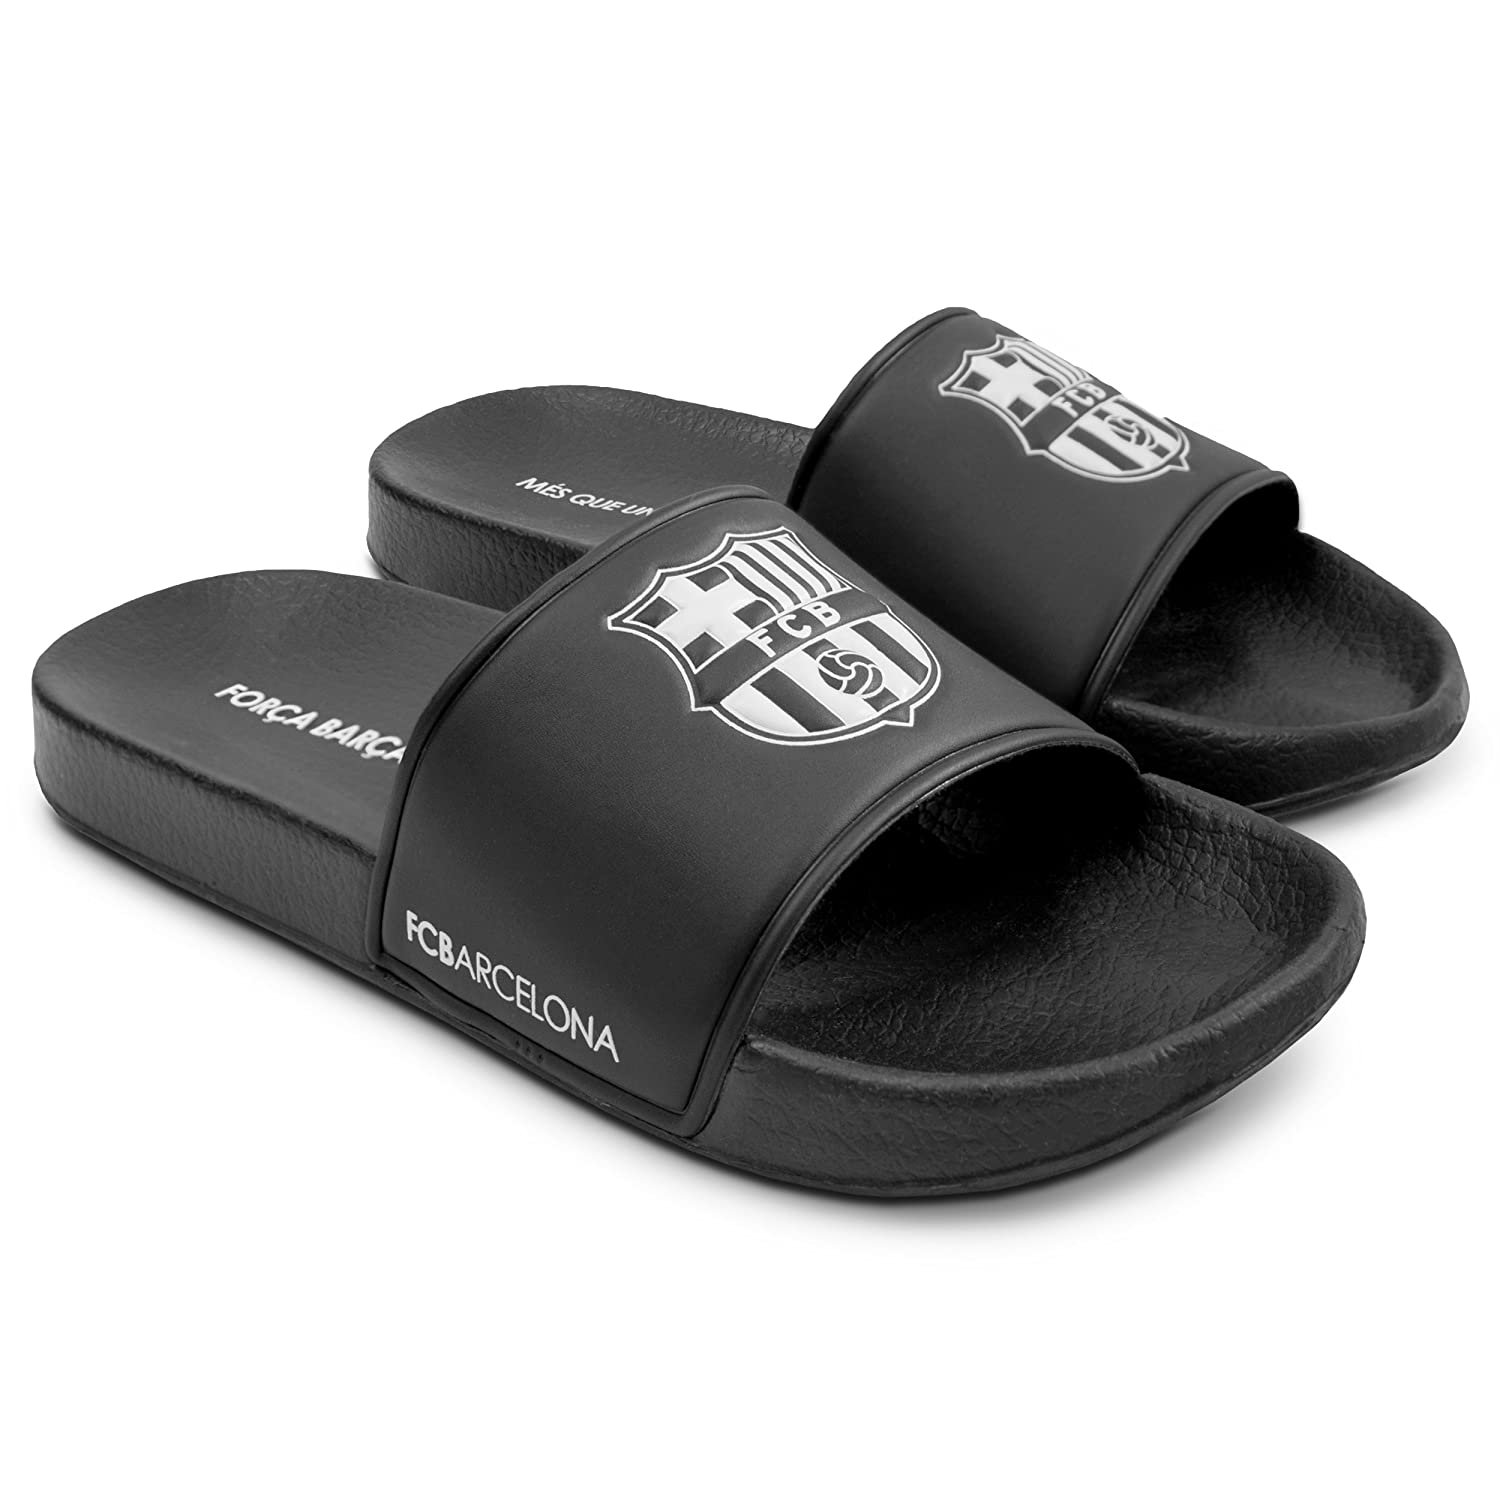 6ad9caf9261046 Amazon.com  FC Barcelona Men Pool Slide Sandal – Water-Resistant Slippers  for Beach   Shower Black White  Shoes